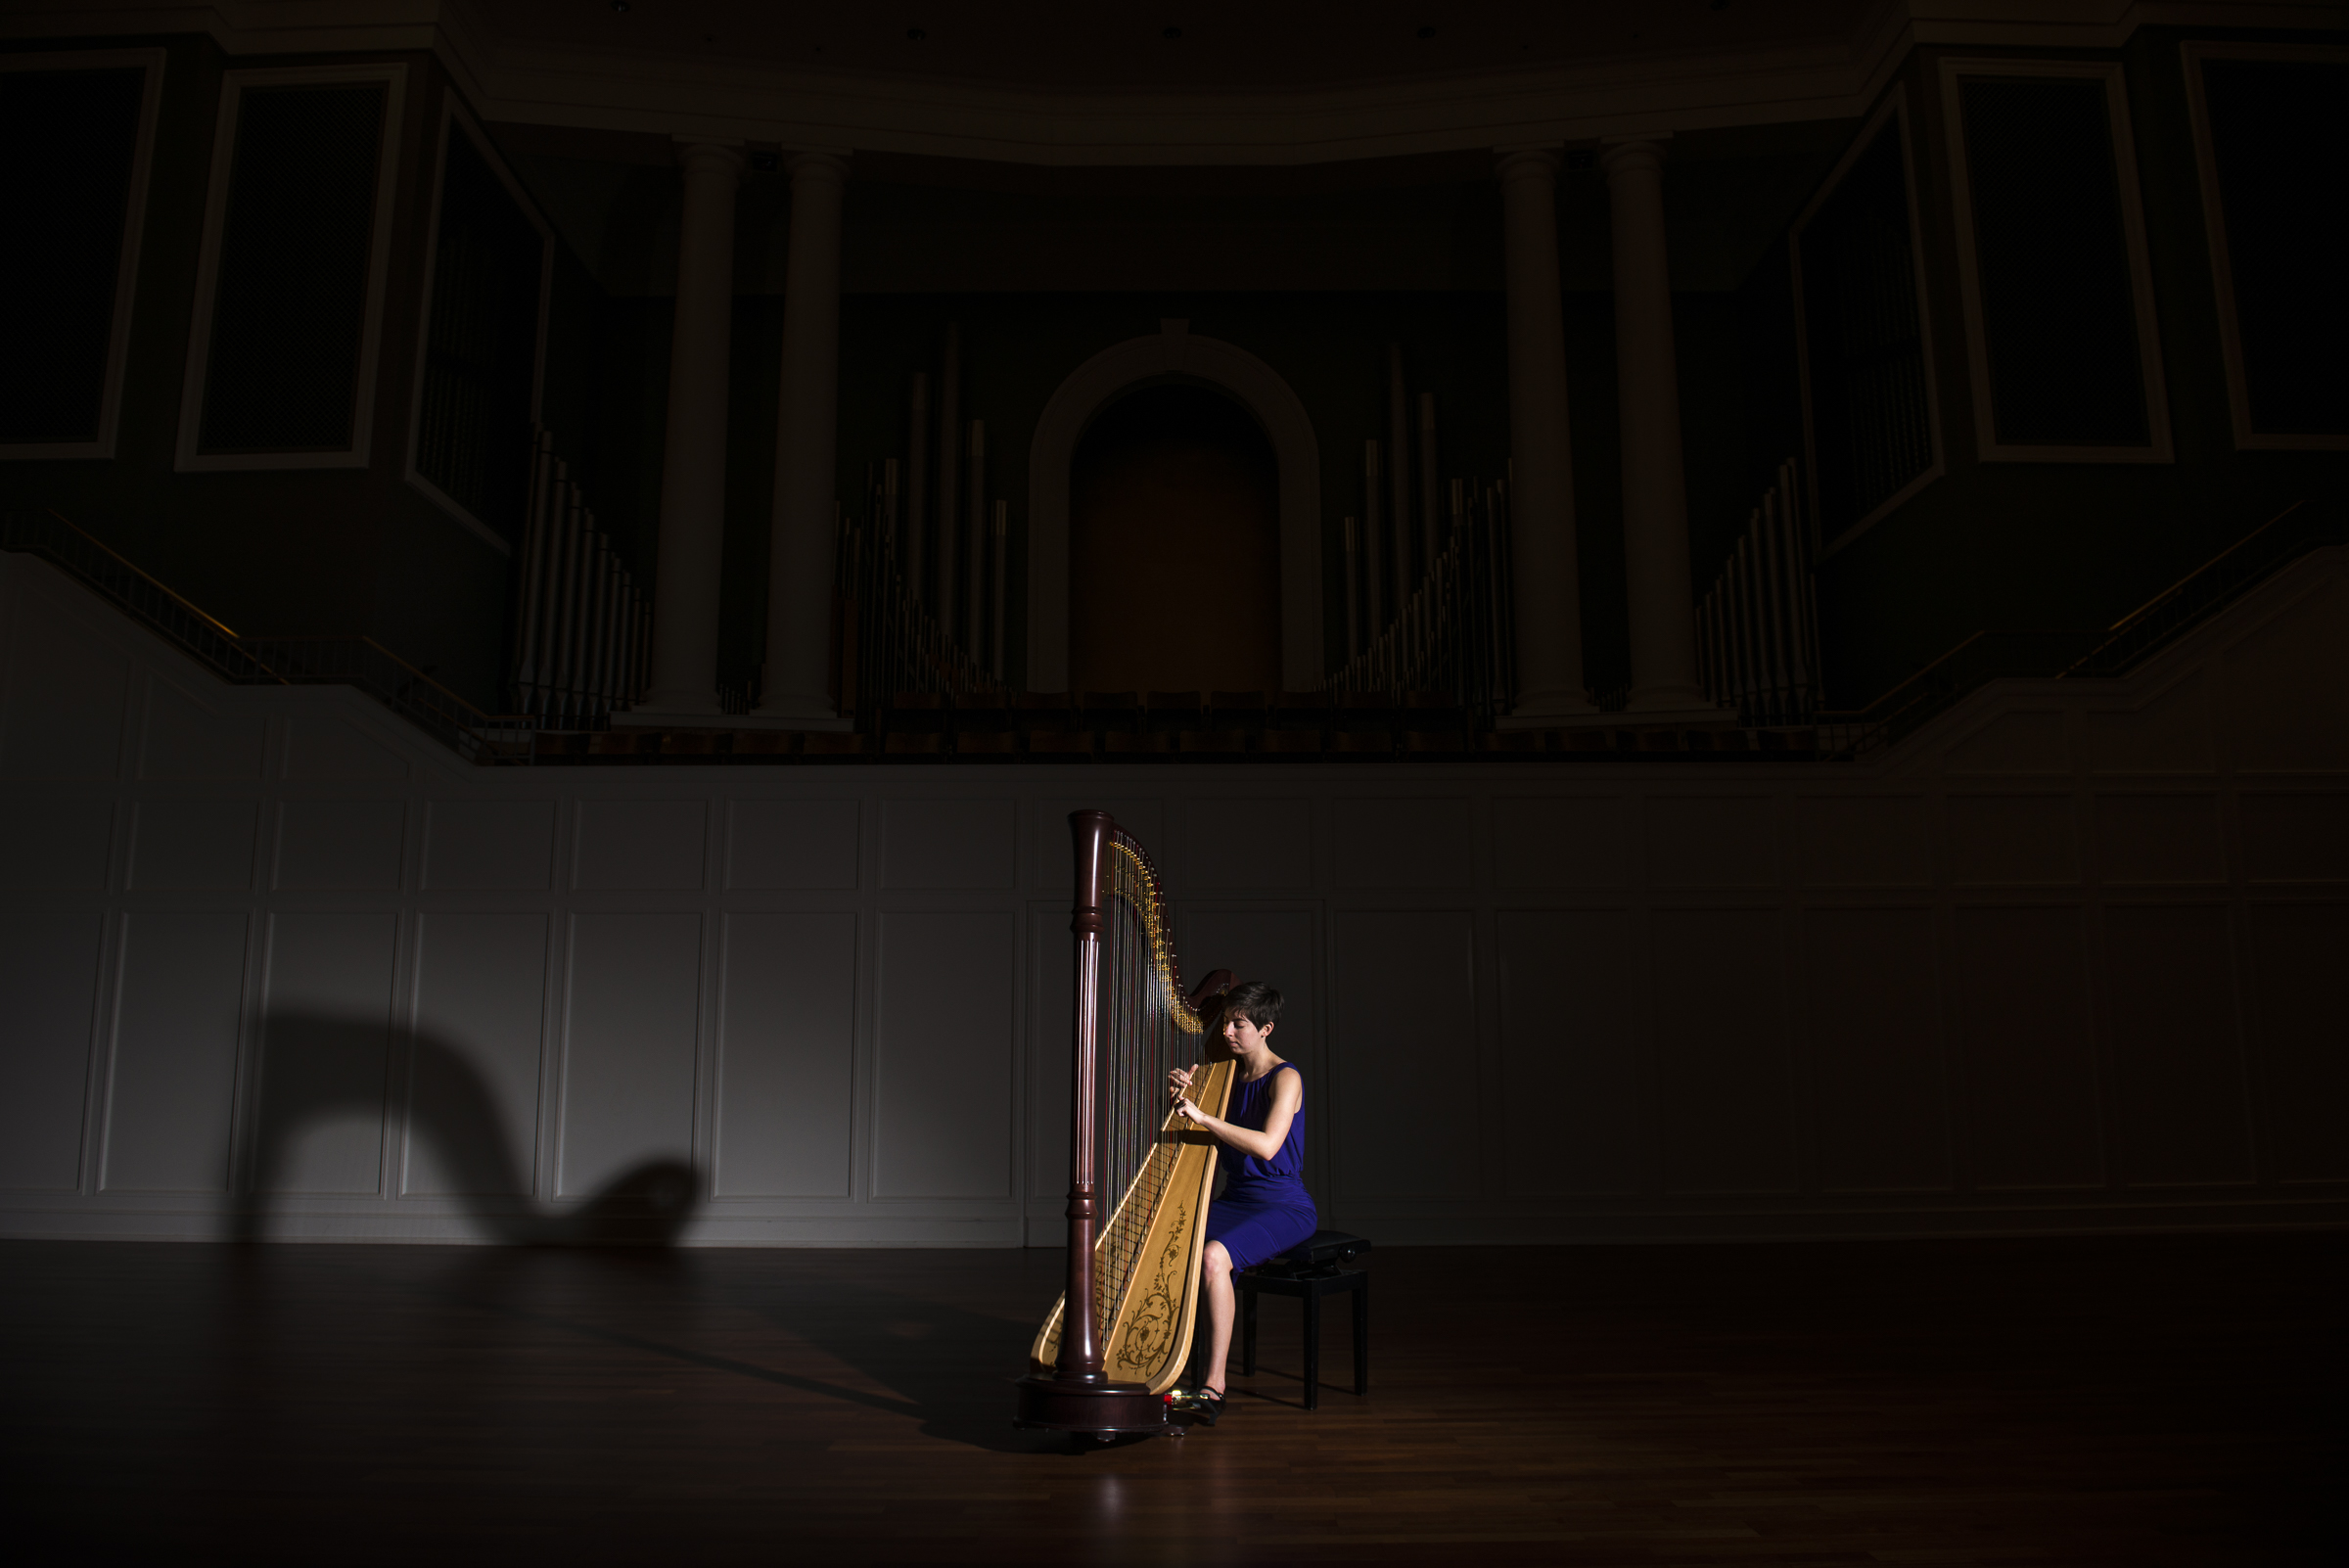 Lauren George, Charleston harpist, at Belmont University's McAfee Concert Hall; Photo by Adam Henderson